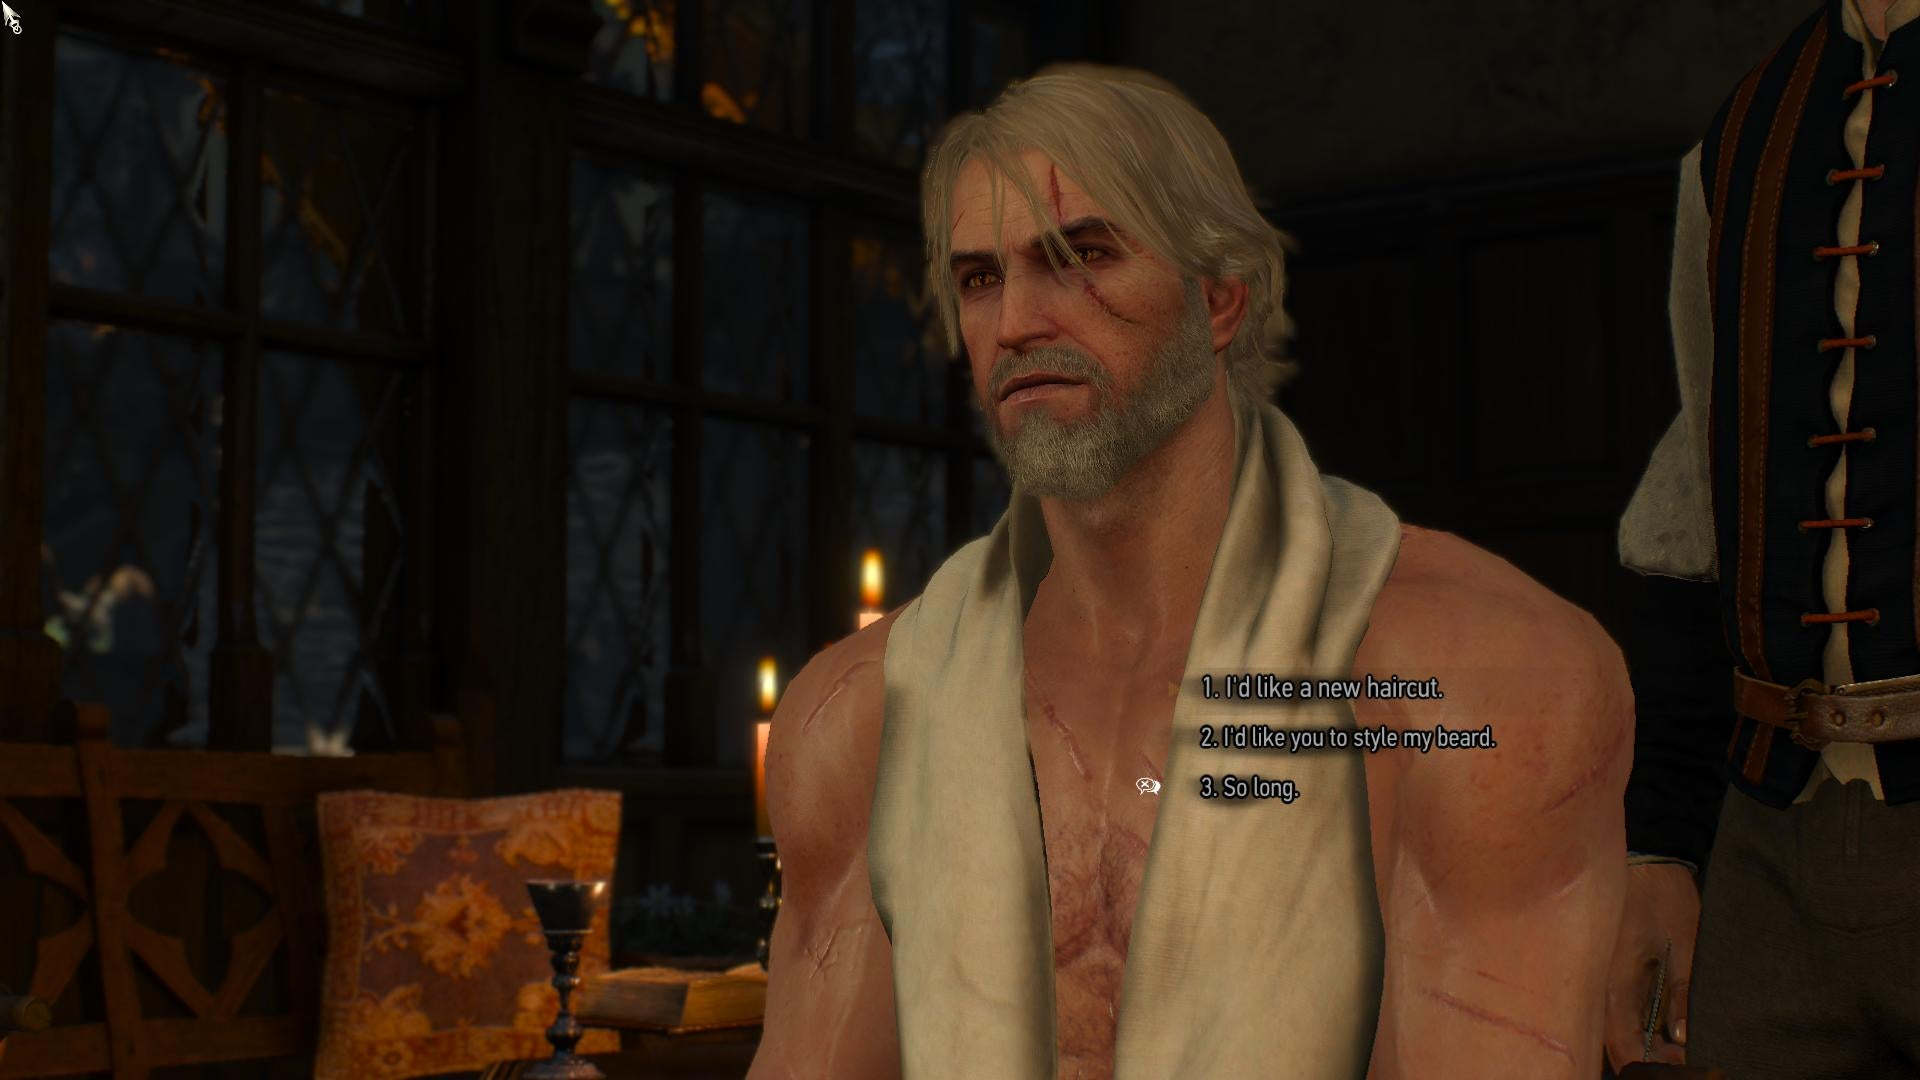 Witcher 3 Hair Styles: The Witcher 3's Free DLC So Far: Monsters, Beards, And A